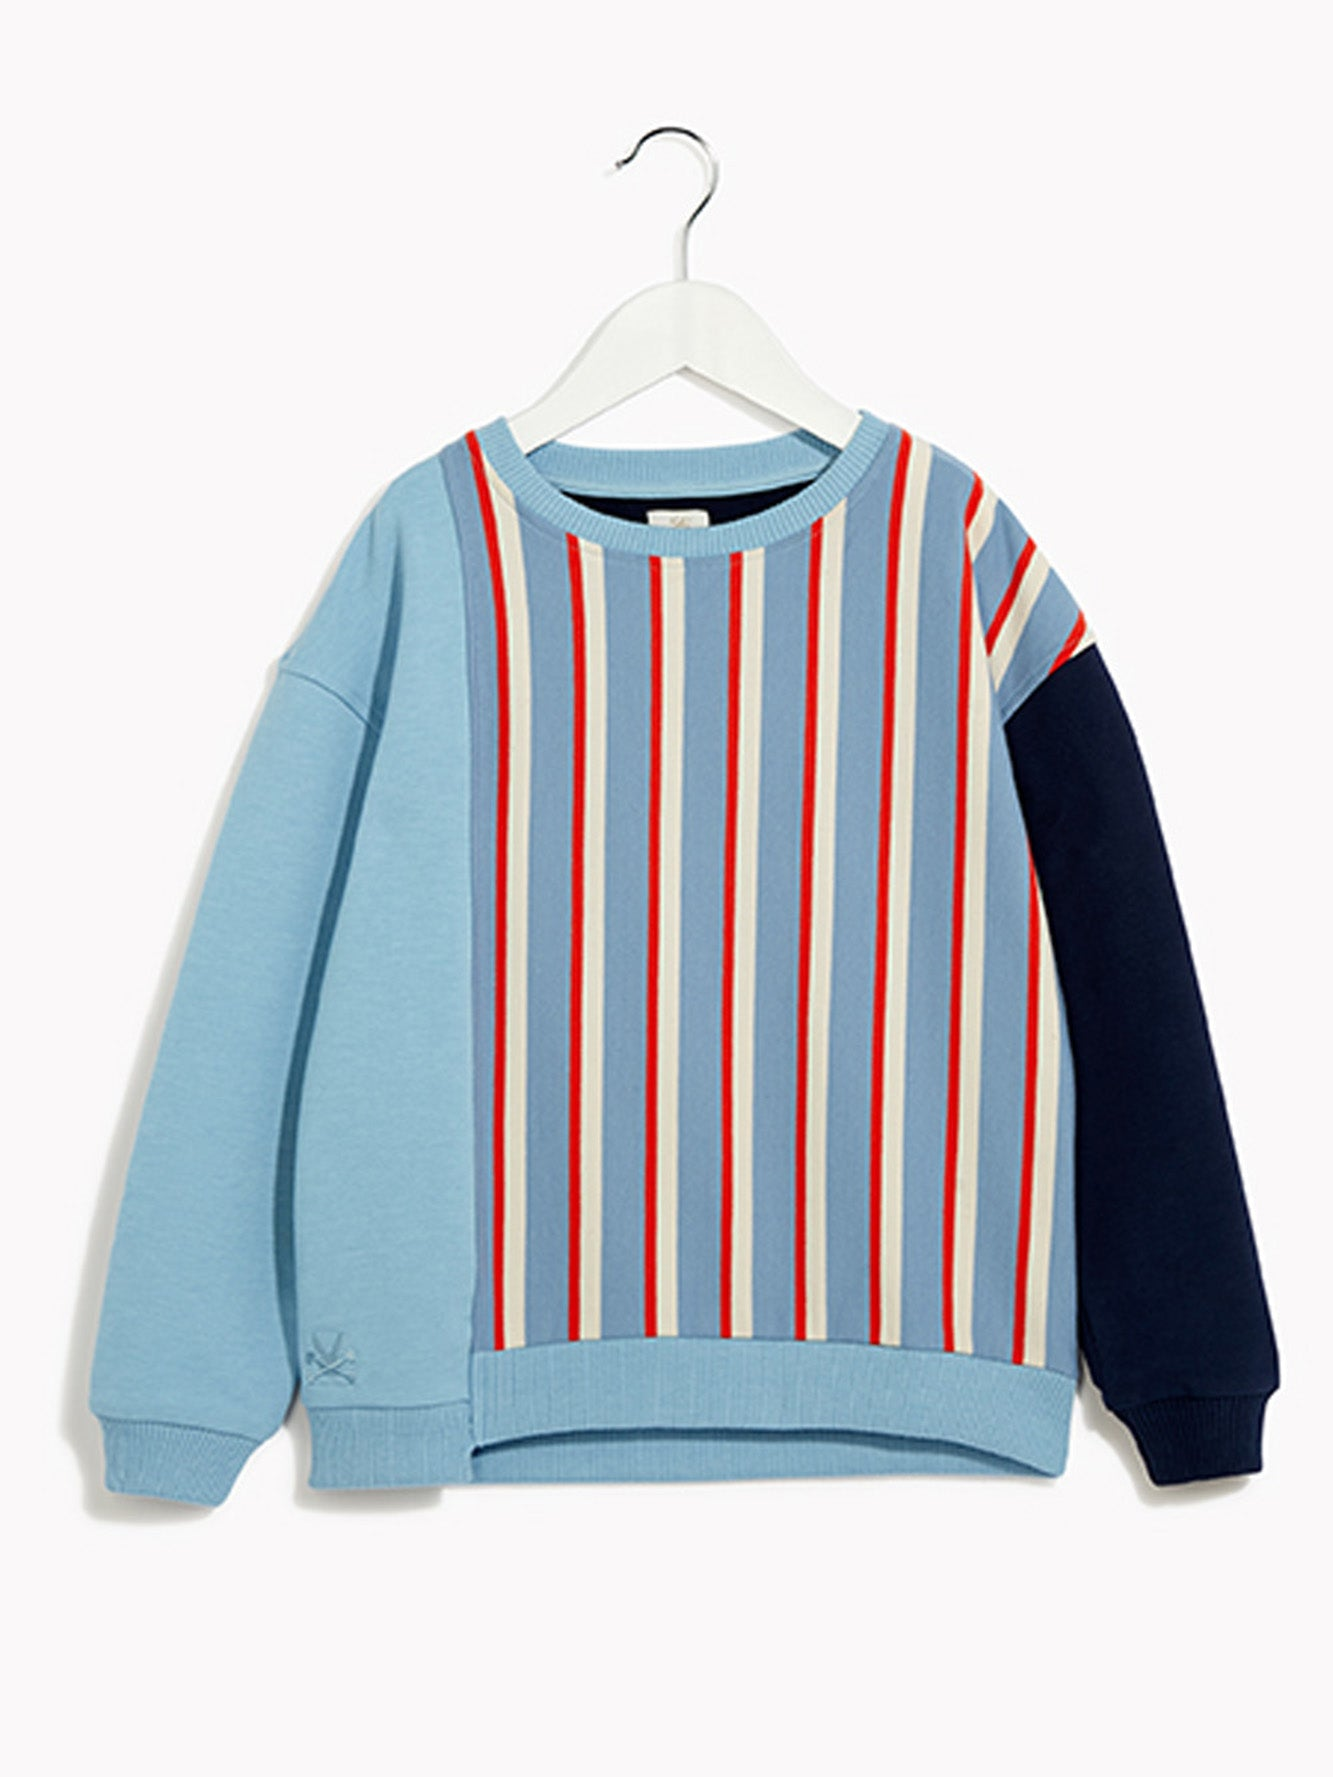 Boys Smart Striped Jumper - Long Sleeved Cut & Paste Brainy Blue Marl Sweat Top